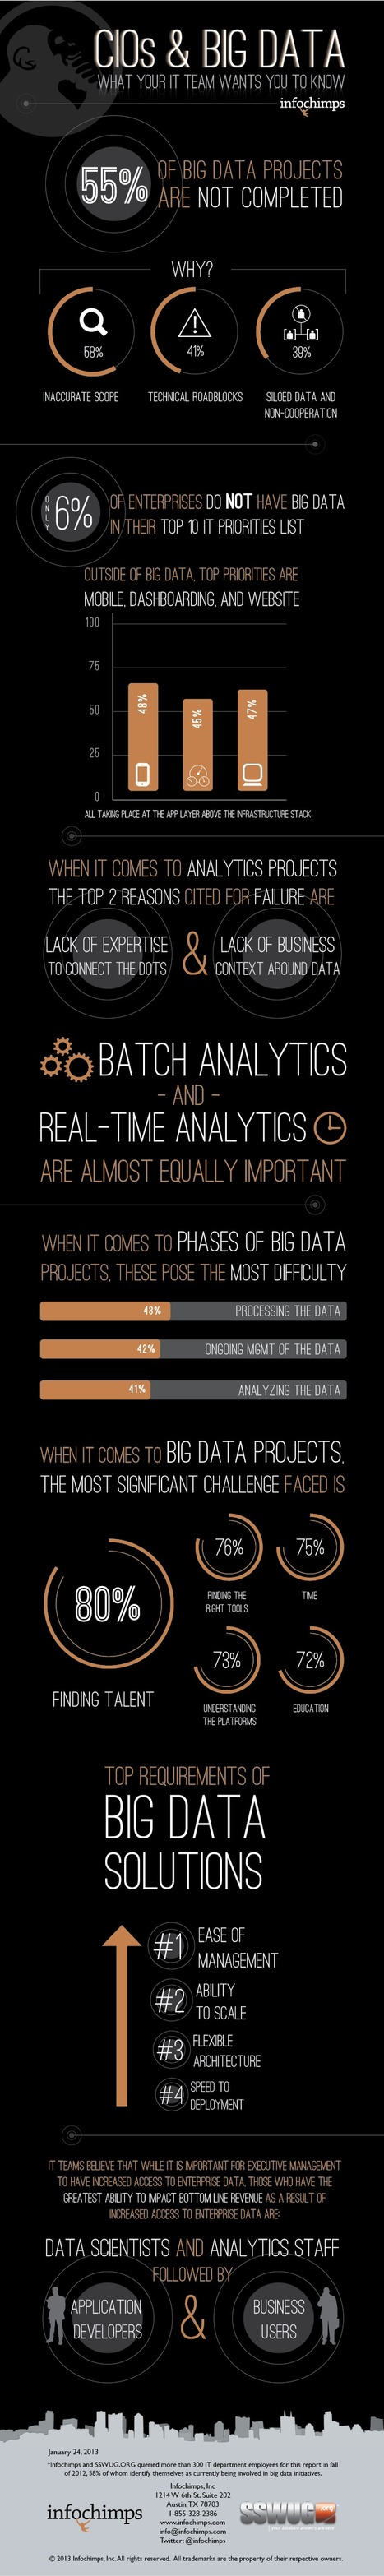 [INFOGRAPHIC] BIG DATA: What Your IT Team Wants You To Know | Big Data for SMBs | Scoop.it